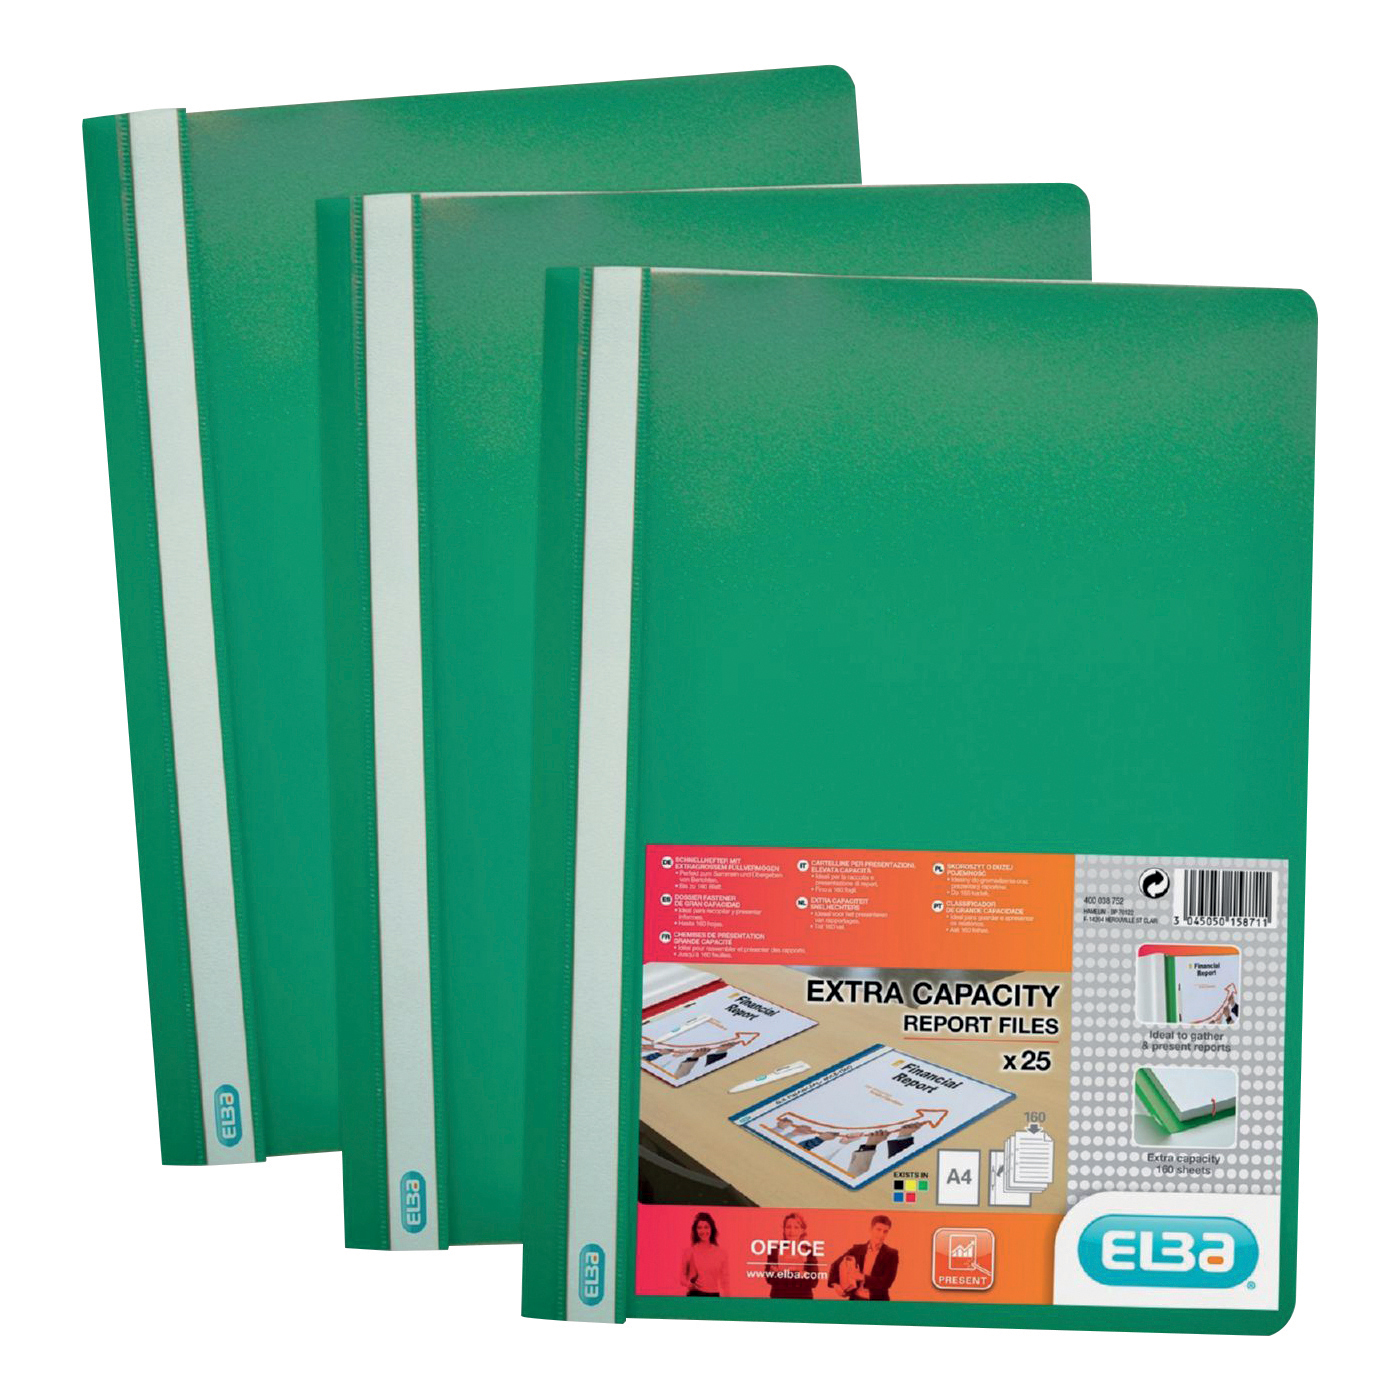 Elba Report Folder Capacity 160 Sheets Clear Front A4 Green Ref 400055031 Pack 50